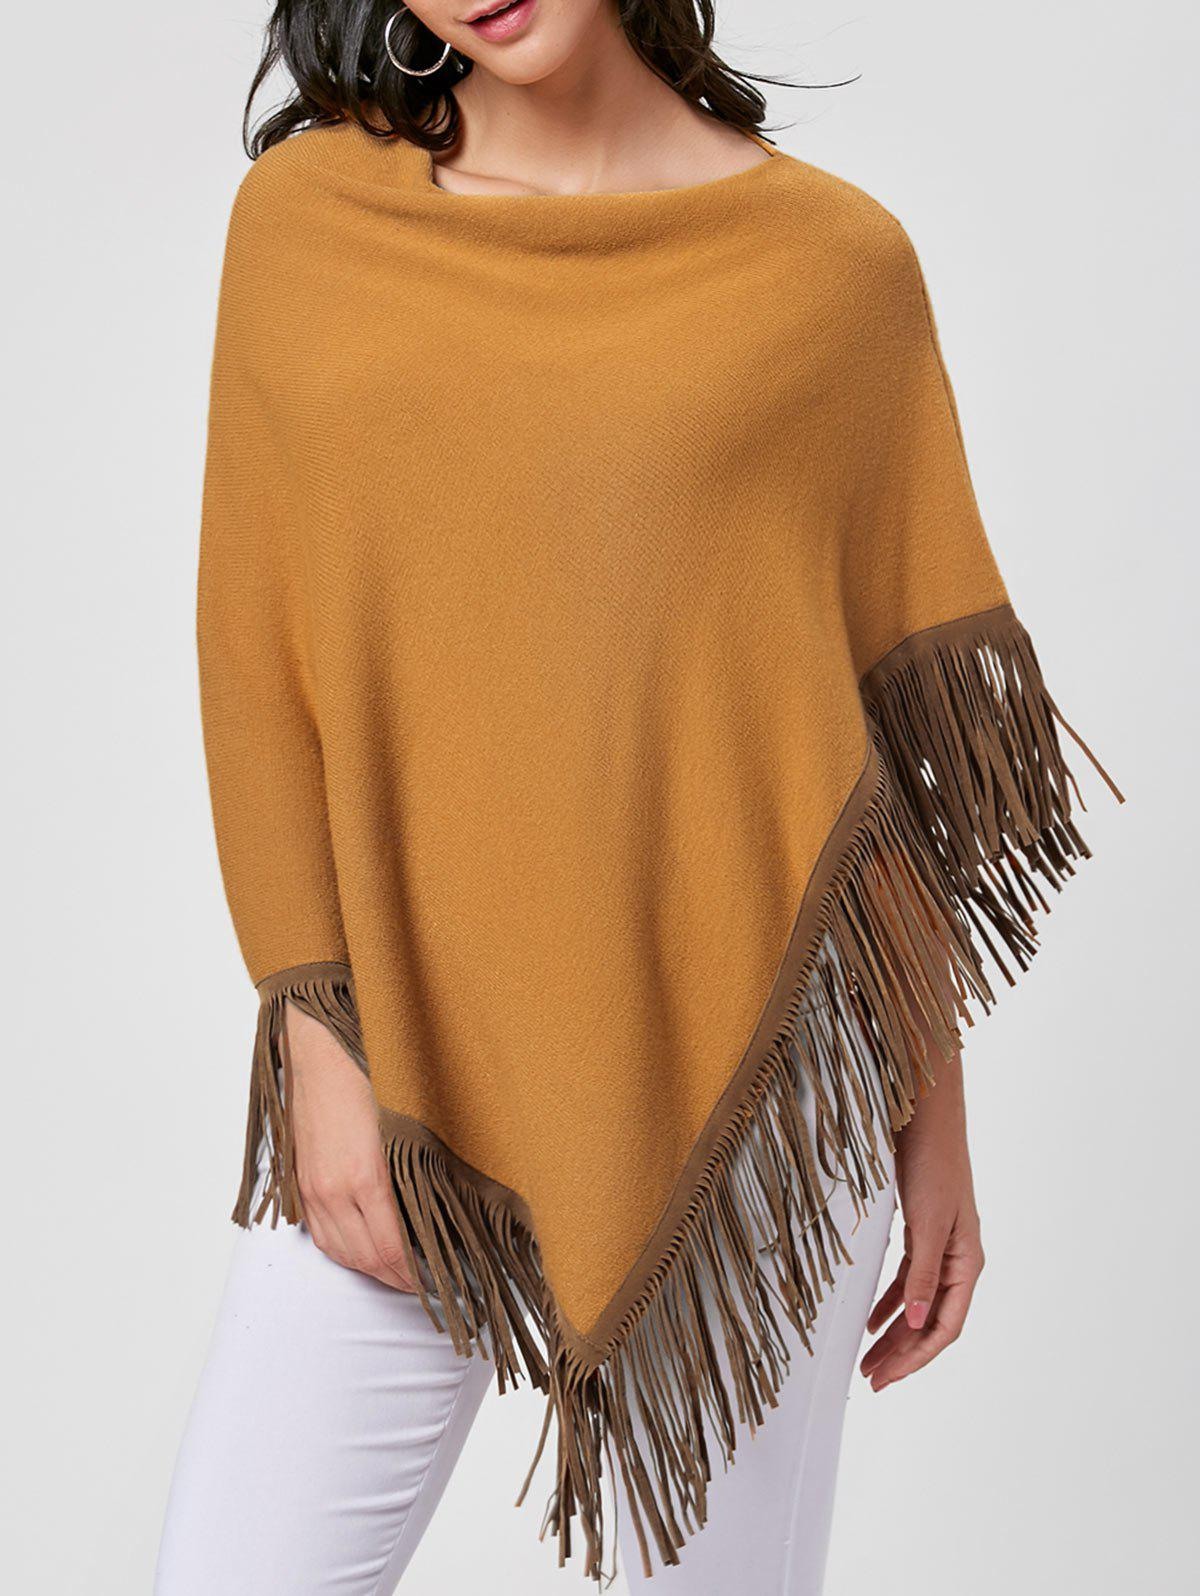 Cowl Neck Fringe Poncho - YELLOW ONE SIZE